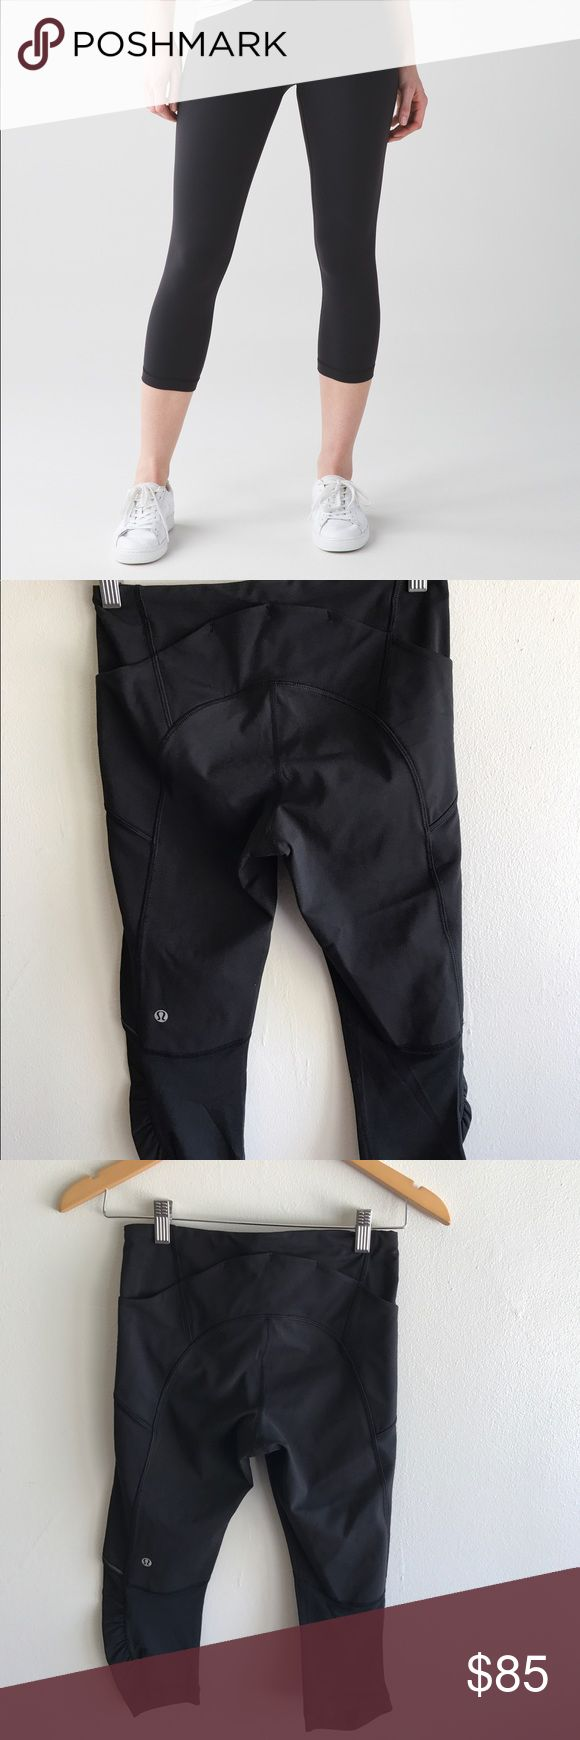 🍋Lululemon Crop Leggings 🔸Black Lululemon Leggings 🔸Size 4 🔸EUC-worn once-Like New 🔸Pocket on Sides 🔸No Stains           Please let me know if you have any additional questions! 🌺🙂 lululemon athletica Pants Leggings